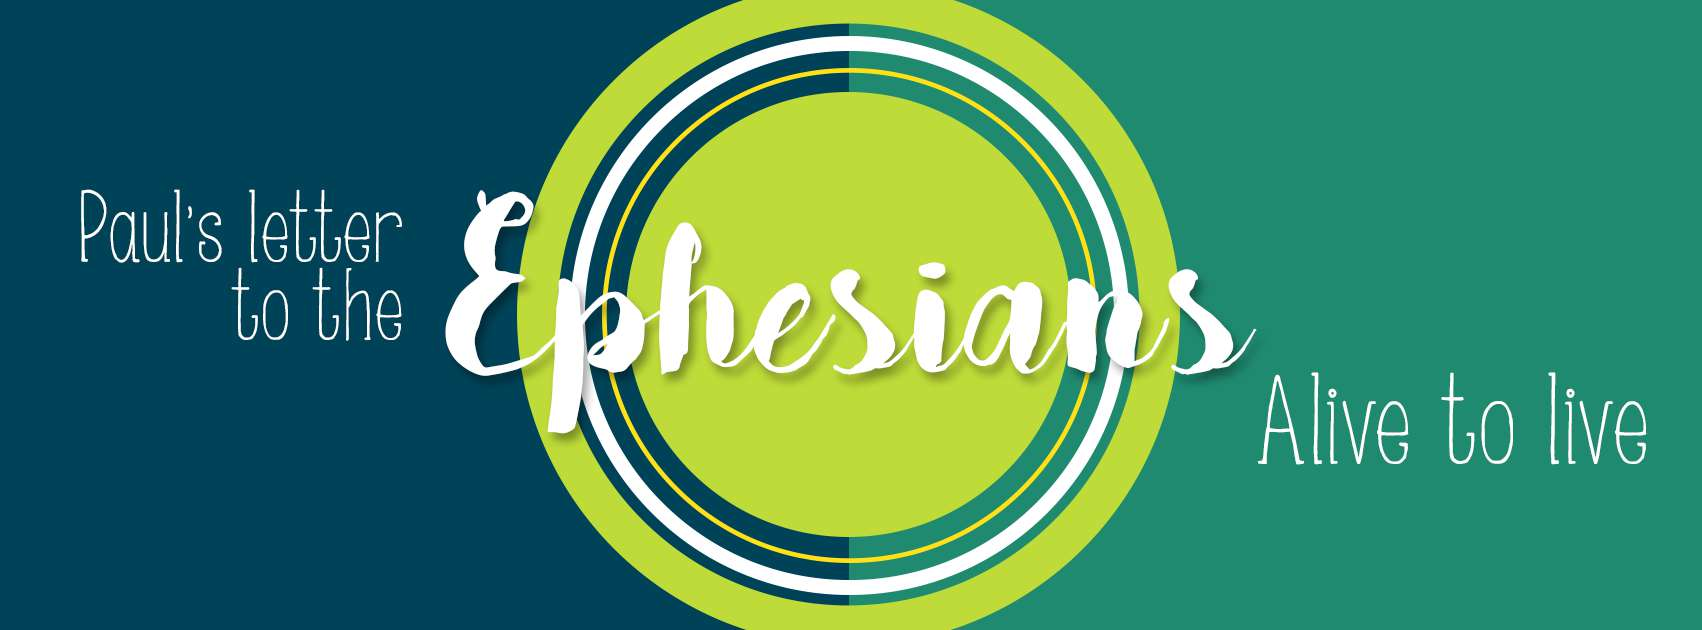 Ephesians: Alive To Live, Part 5: From For To Through